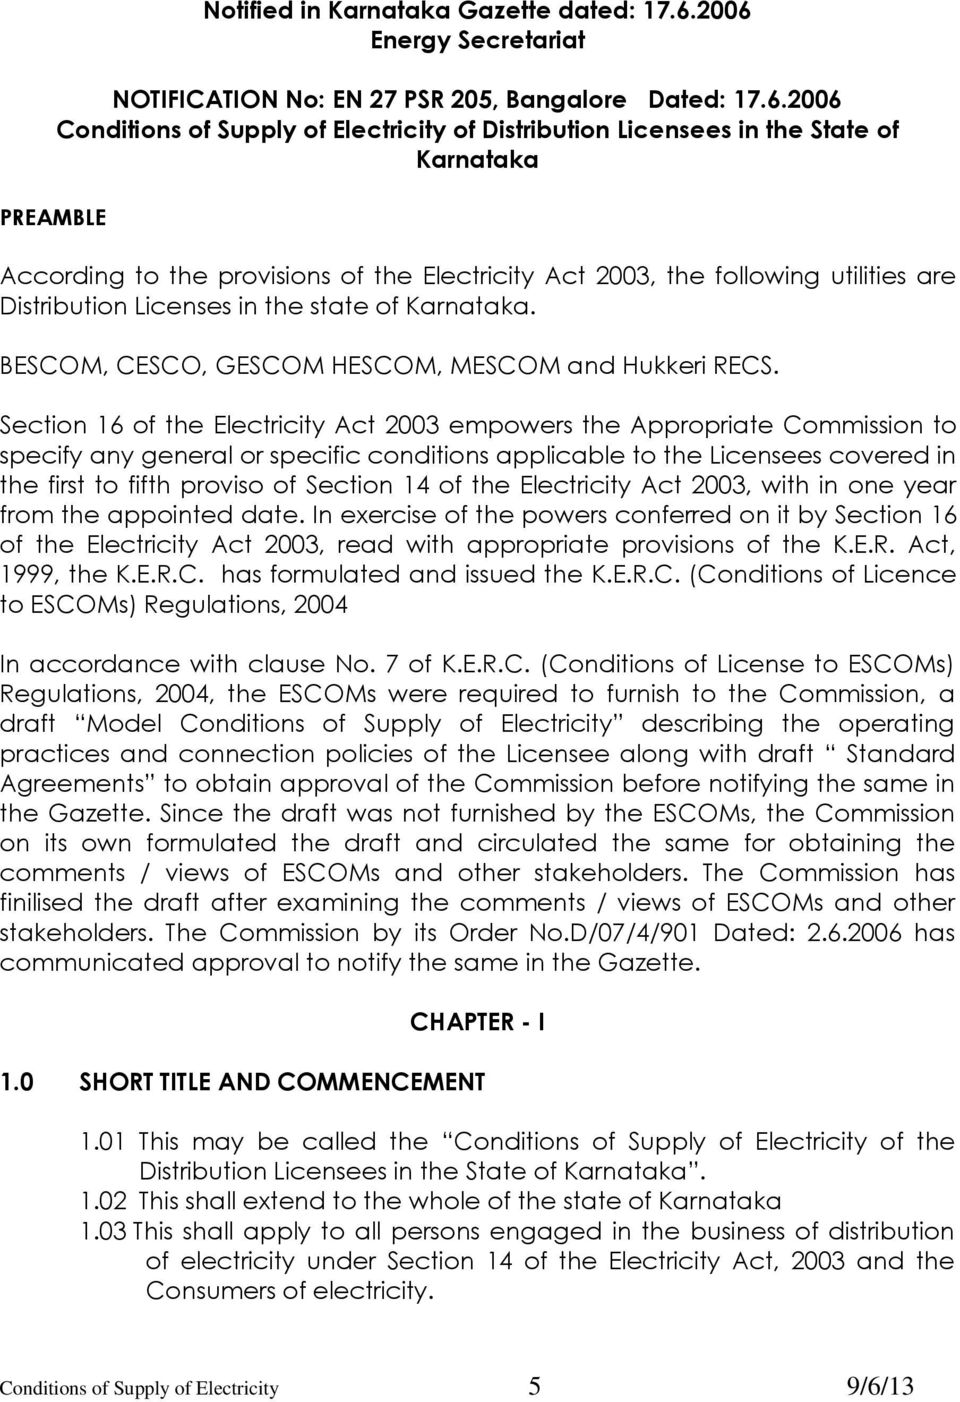 Provisions Of The Electricity Act 2003 Following Utilities Are Distribution Licenses In State